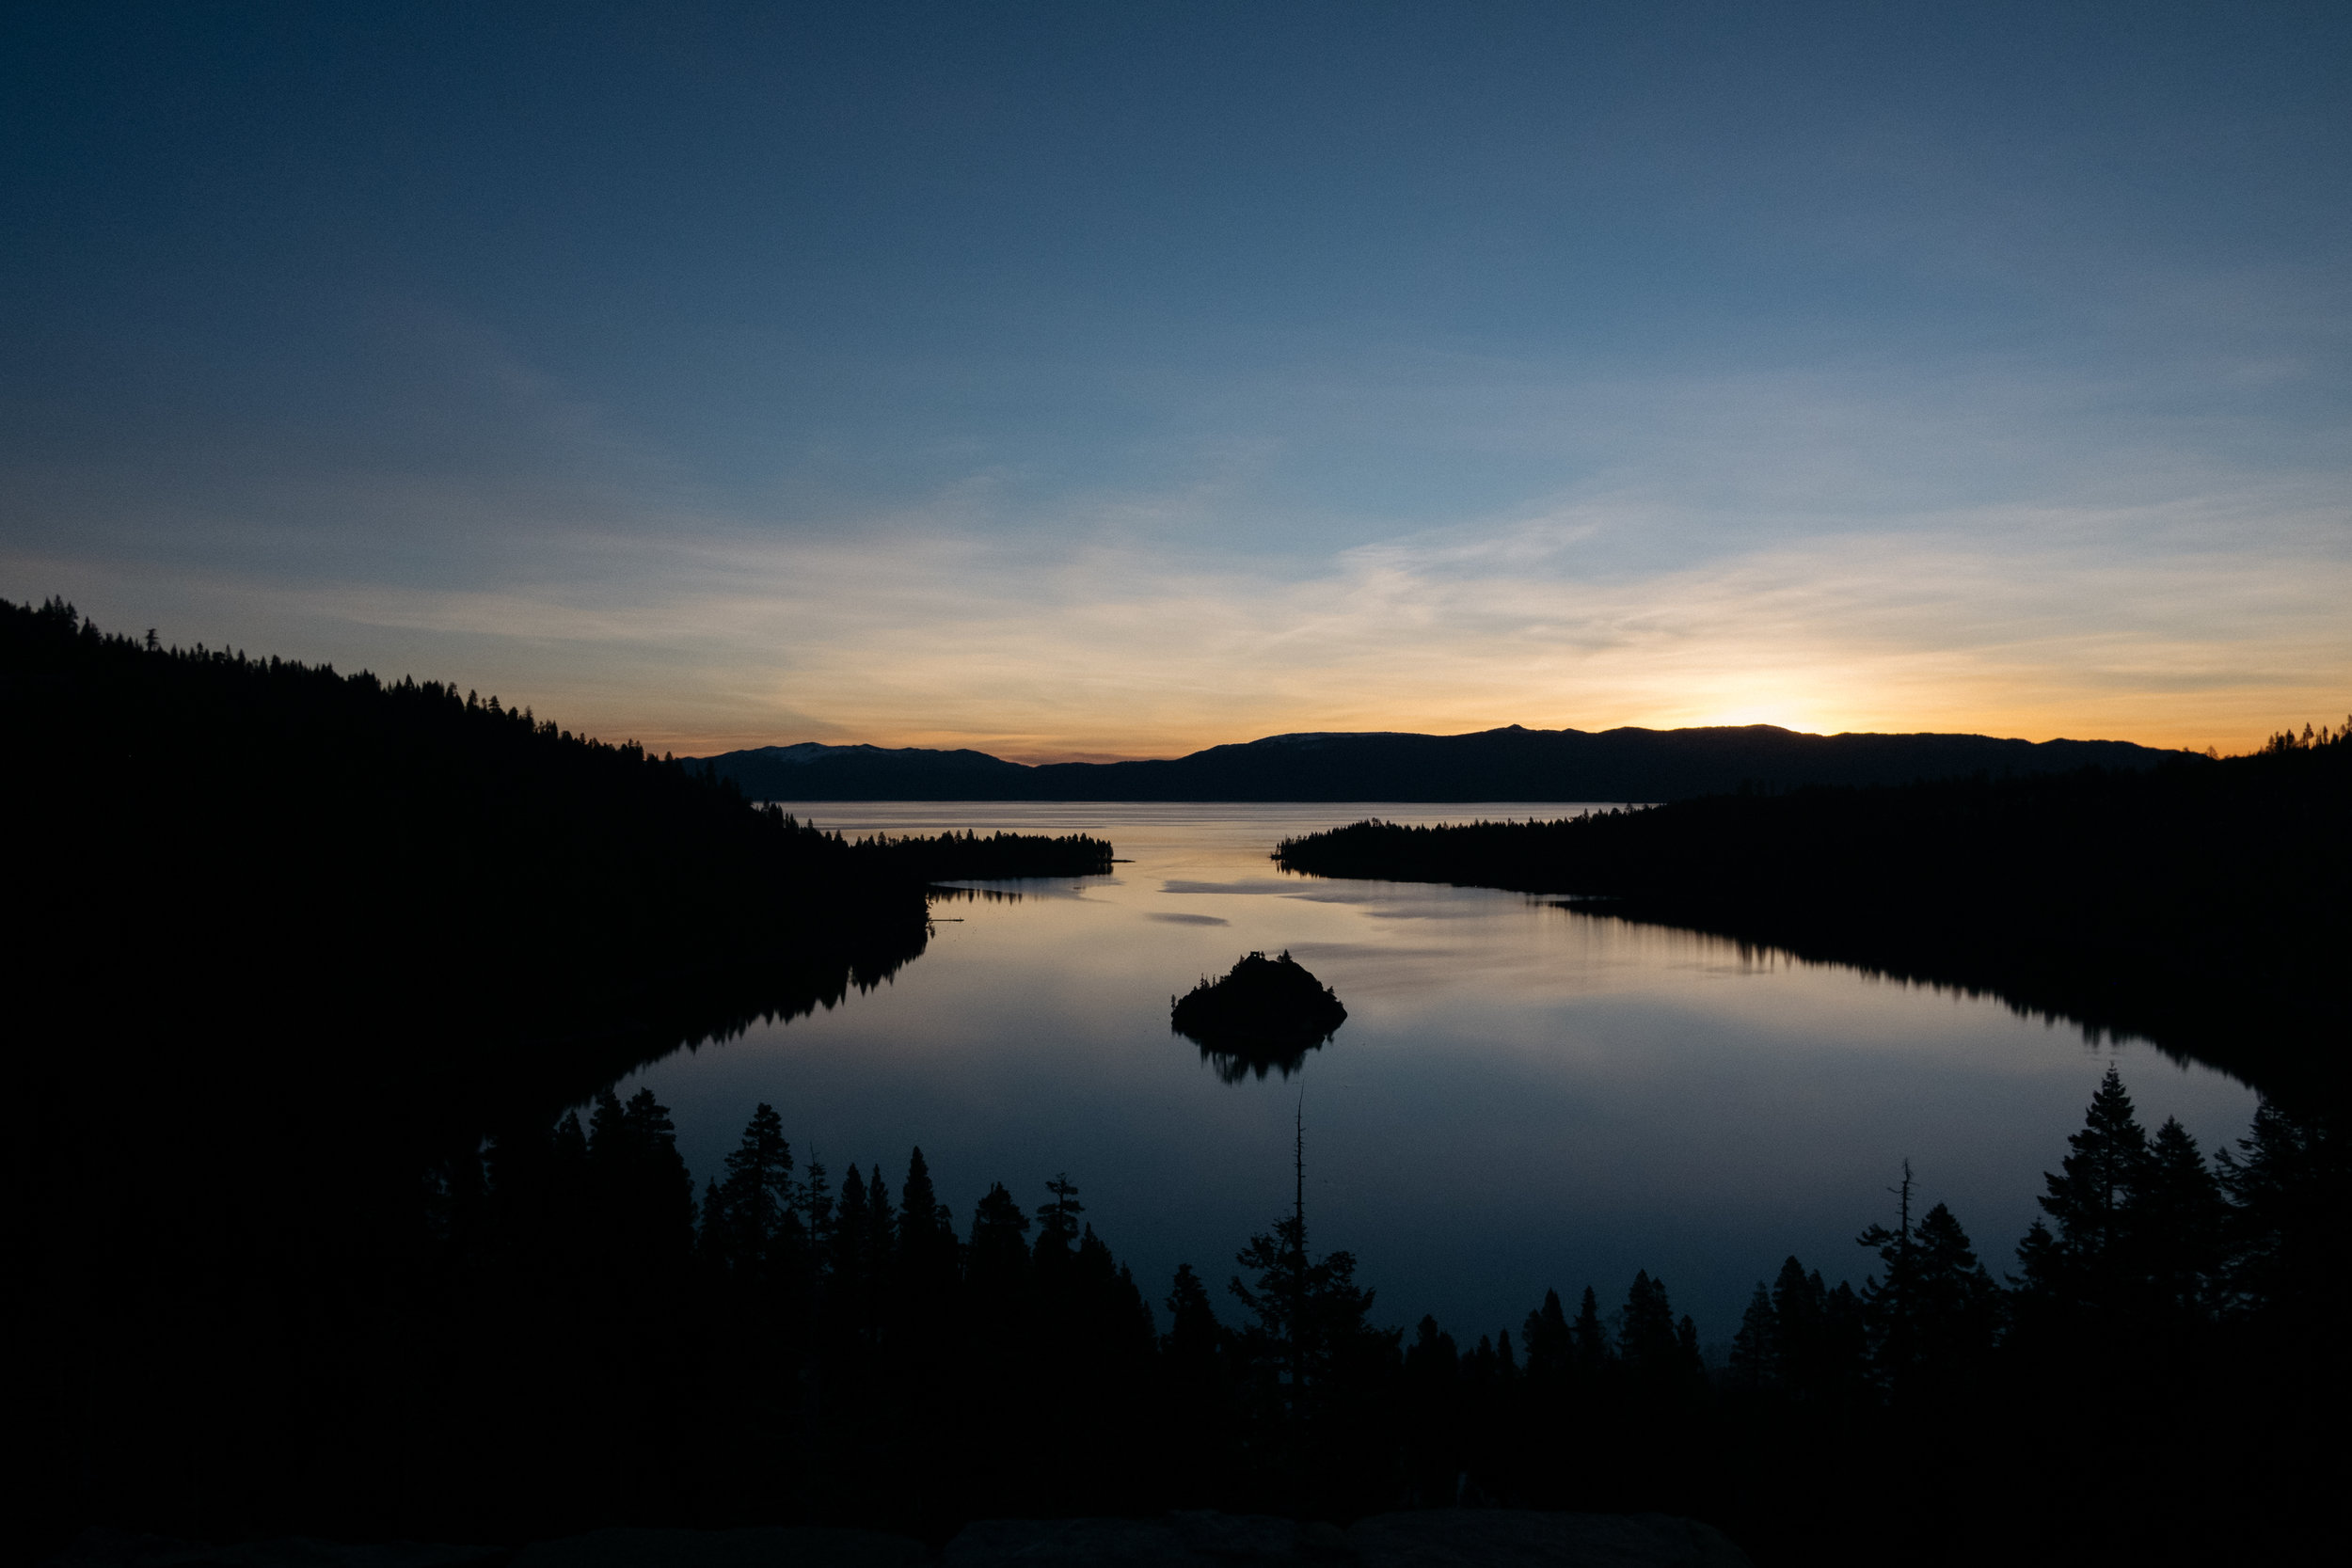 Emerald Bay at sunrise